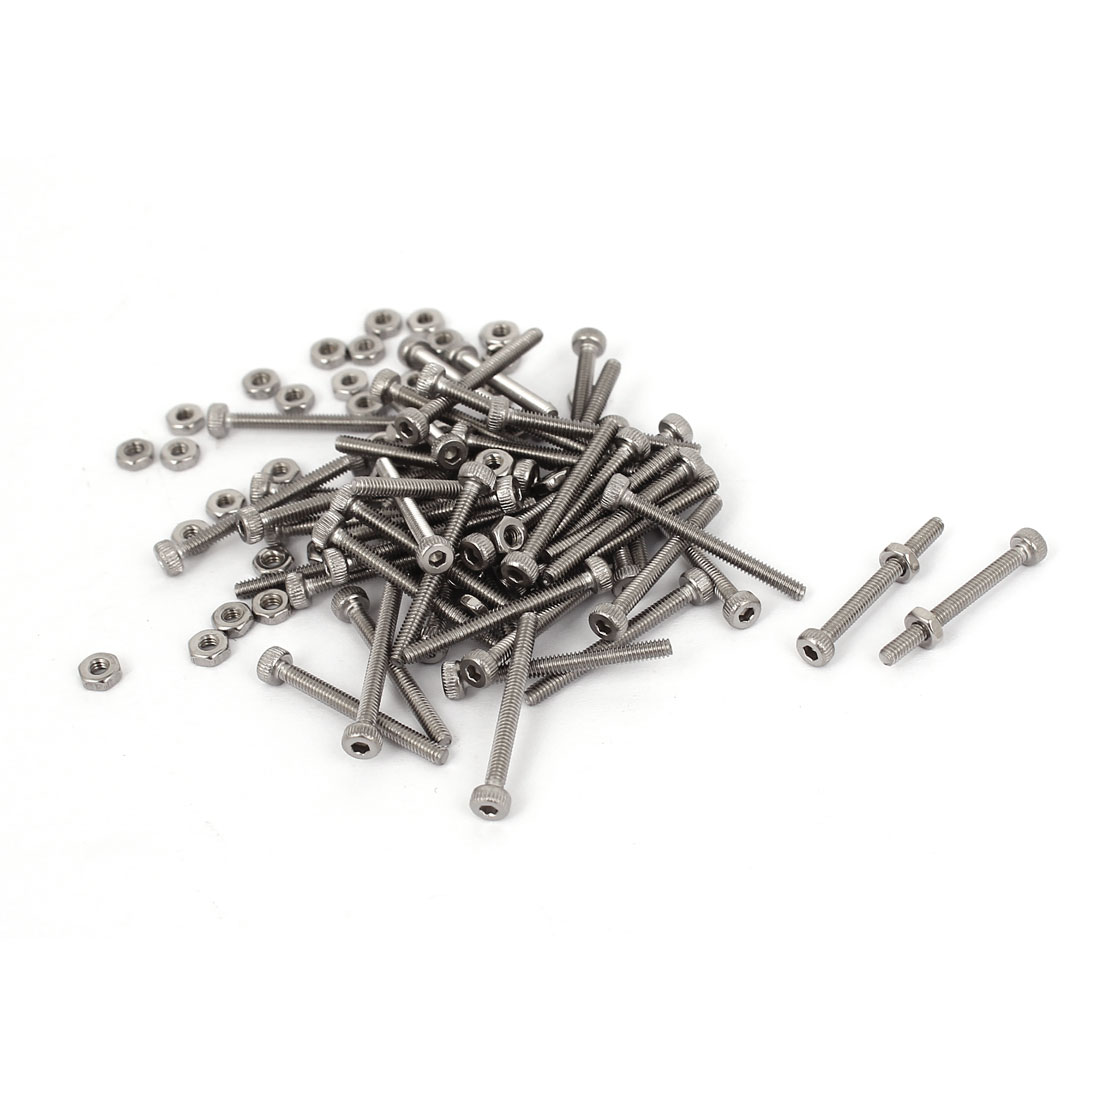 M2x20mm Stainless Steel Hex Socket Head Knurled Cap Screws Bolts Nut Set 20Pcs